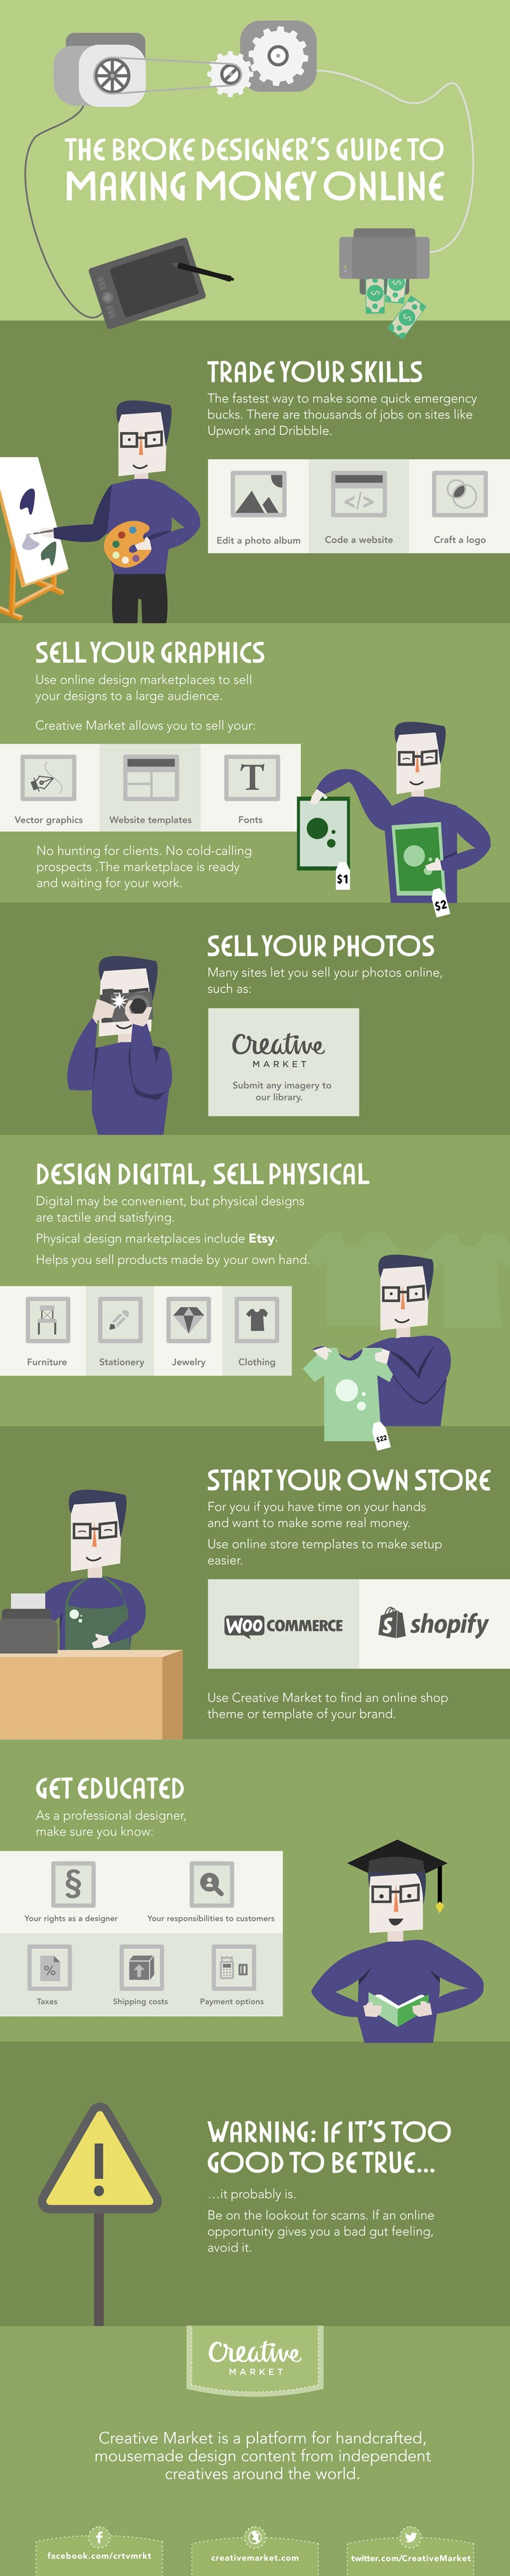 The Broke Designer's Guide to Making Money Online - #infographic